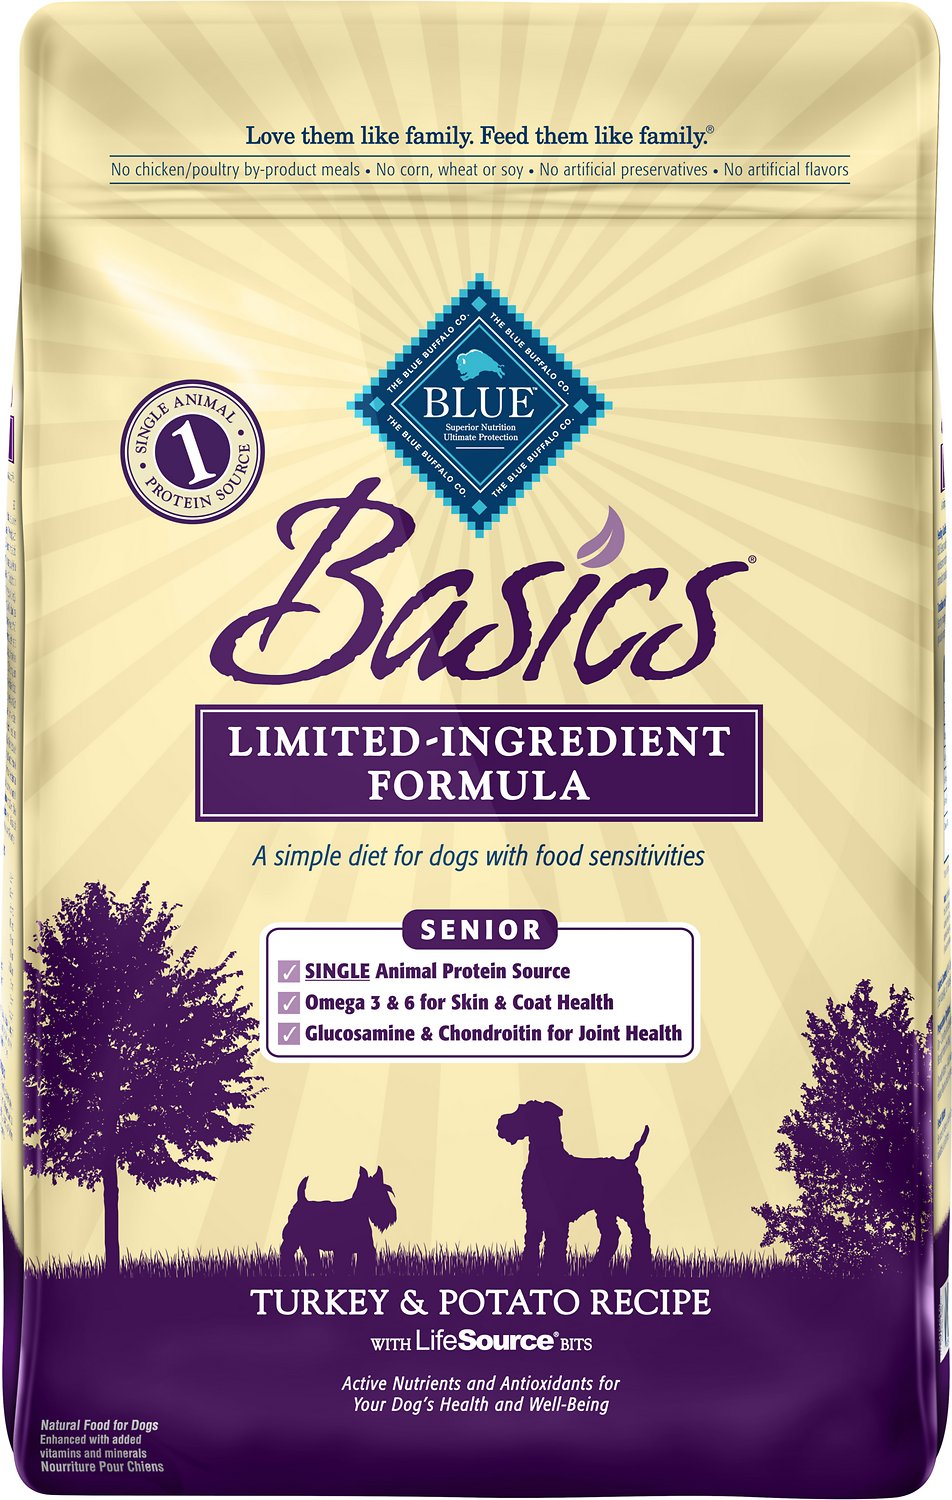 Blue Buffalo Basics Turkey & Potato Recipe Senior Dry Dog Food Image